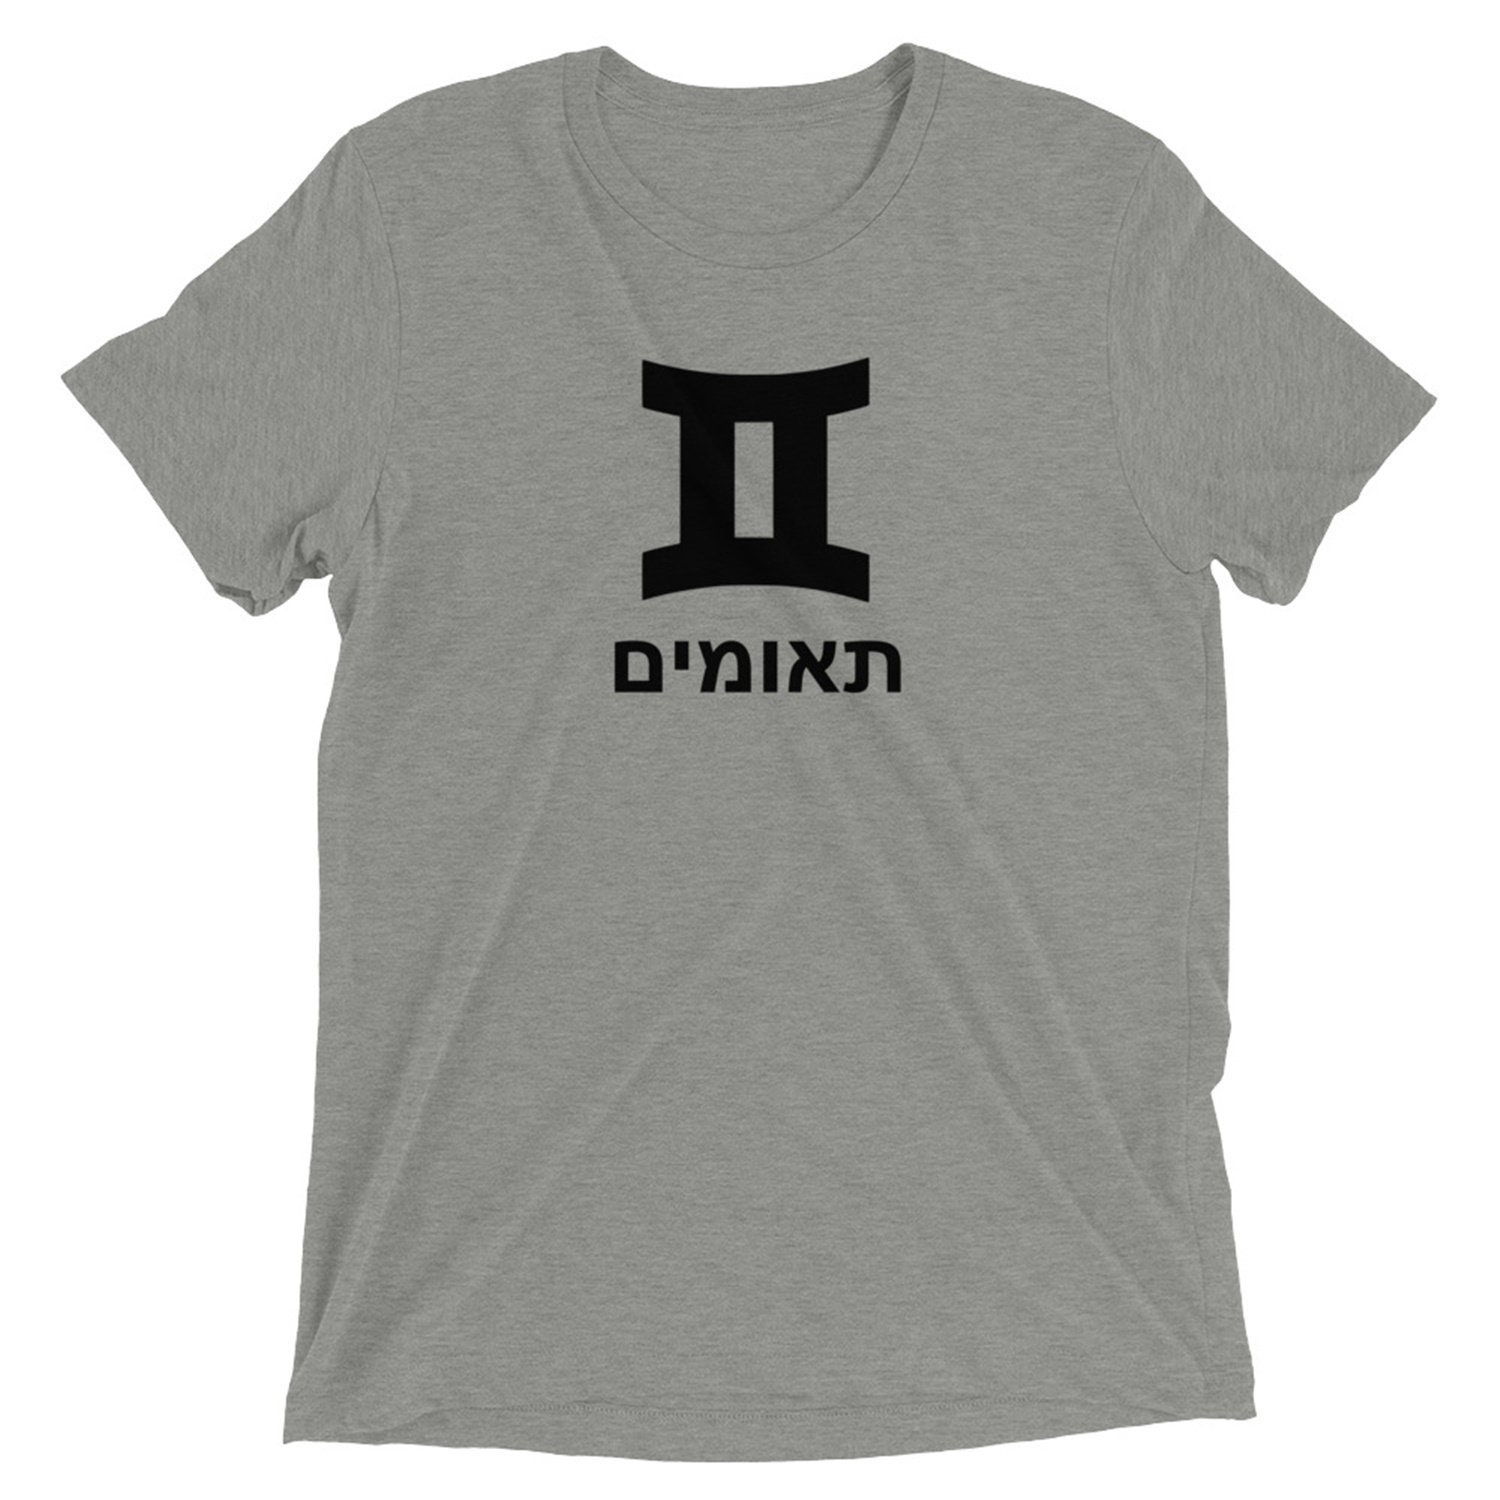 Gemini zodiac sign unisex Hebrew tri blend t-shirt, Horoscope astrology  gift for birthday